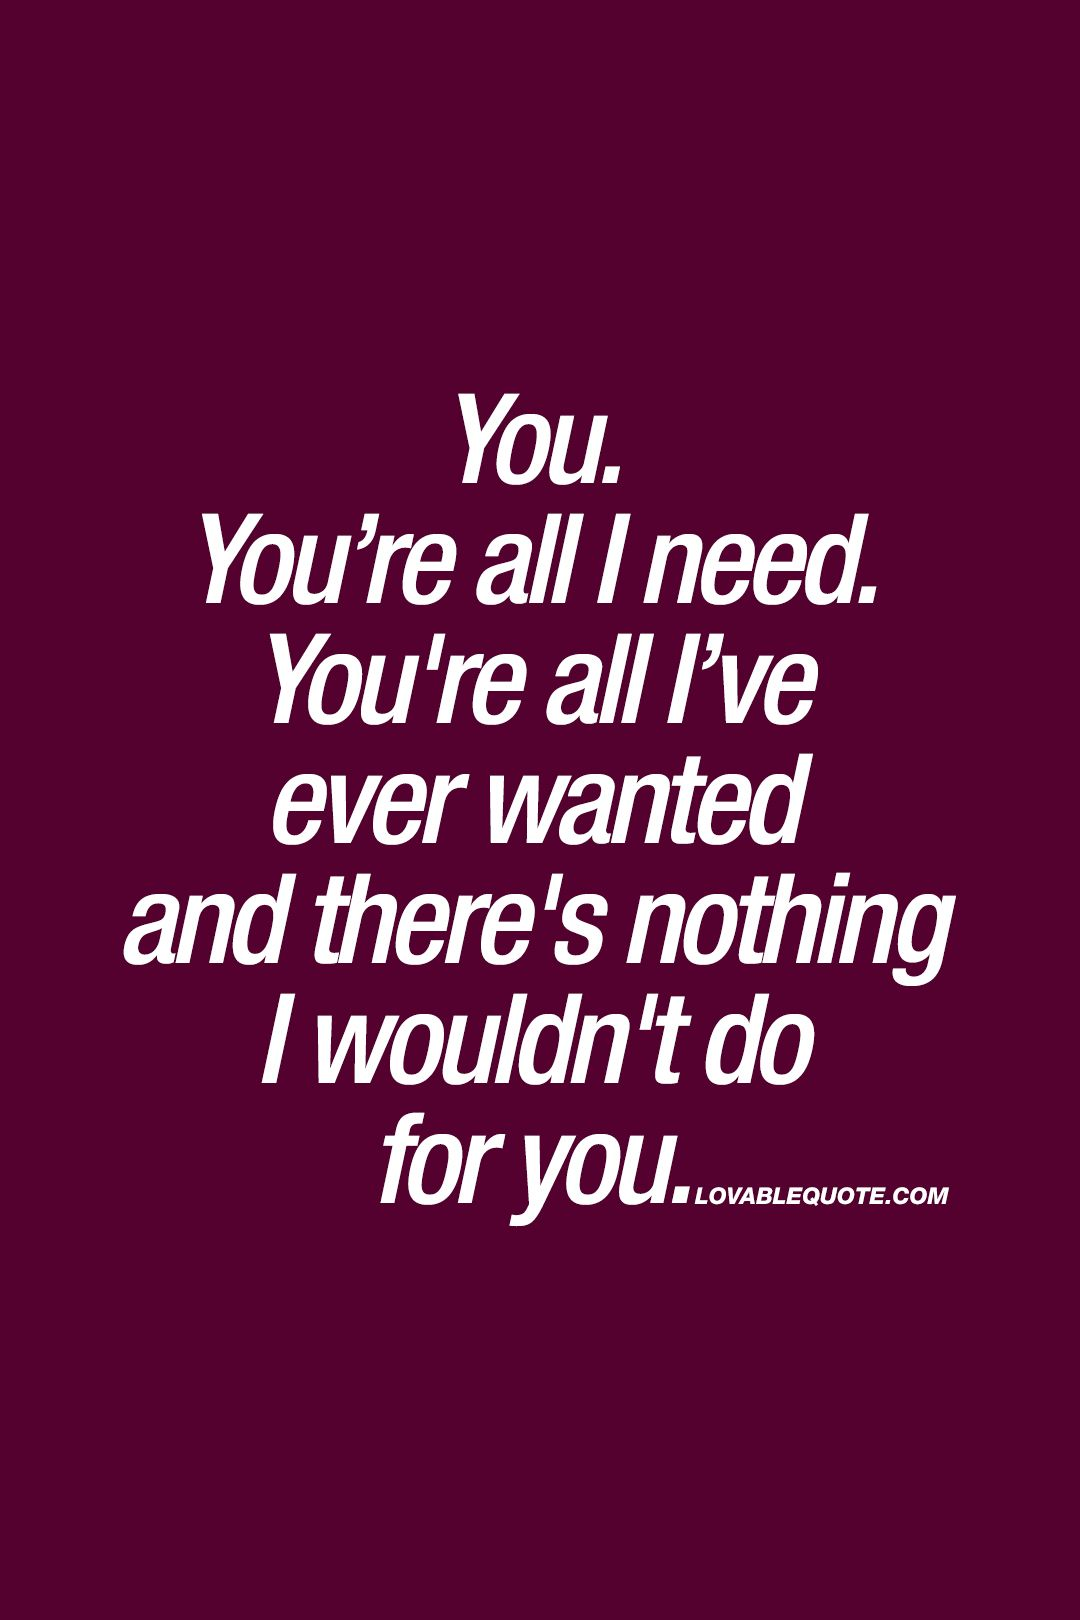 I Need You Quotes. QuotesGram